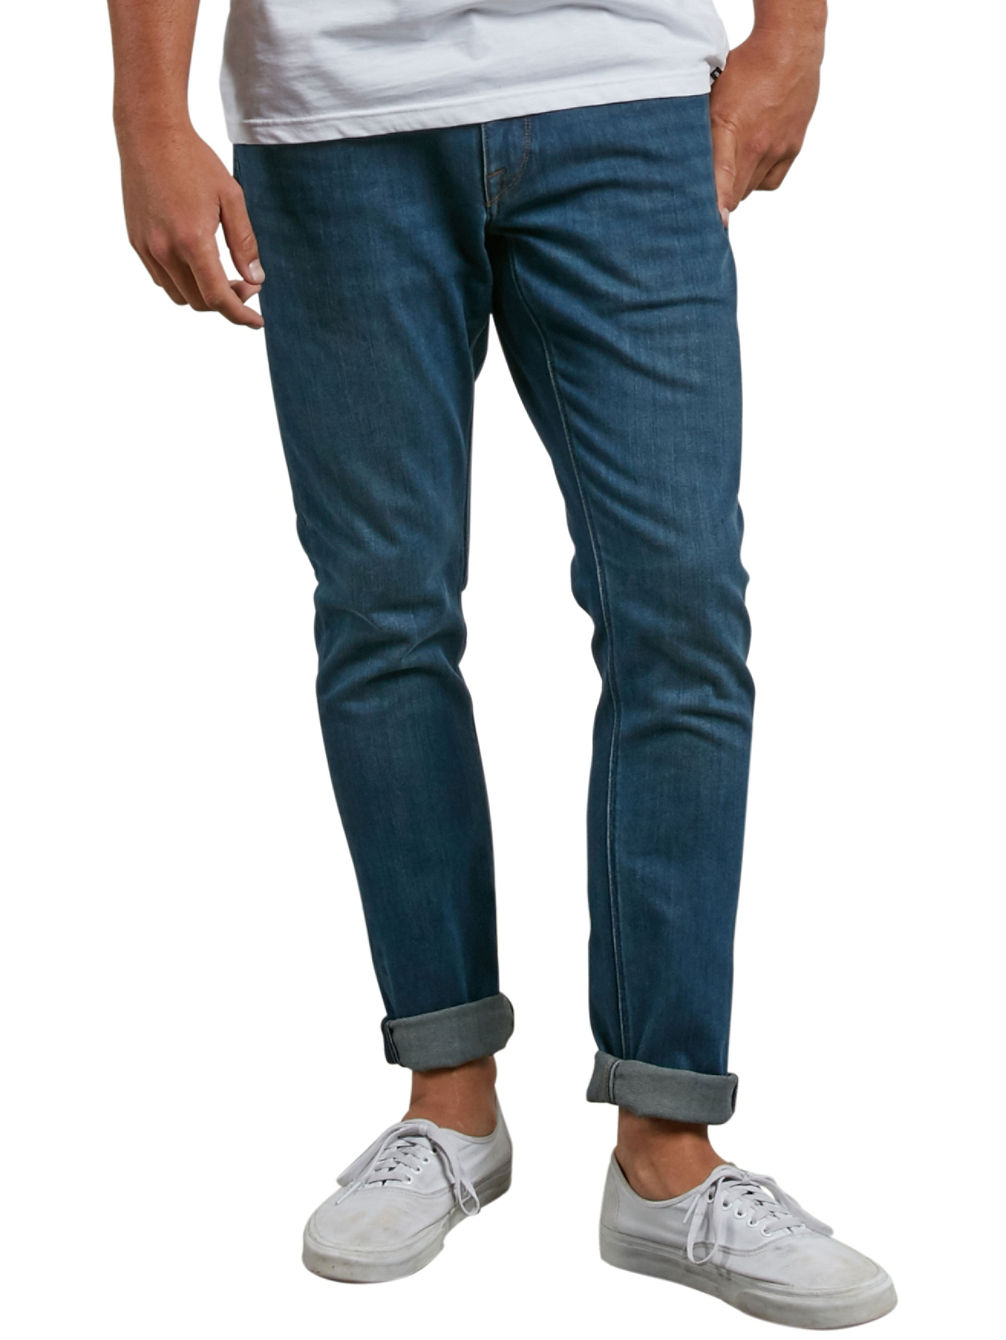 Vorta Tapered Jeans